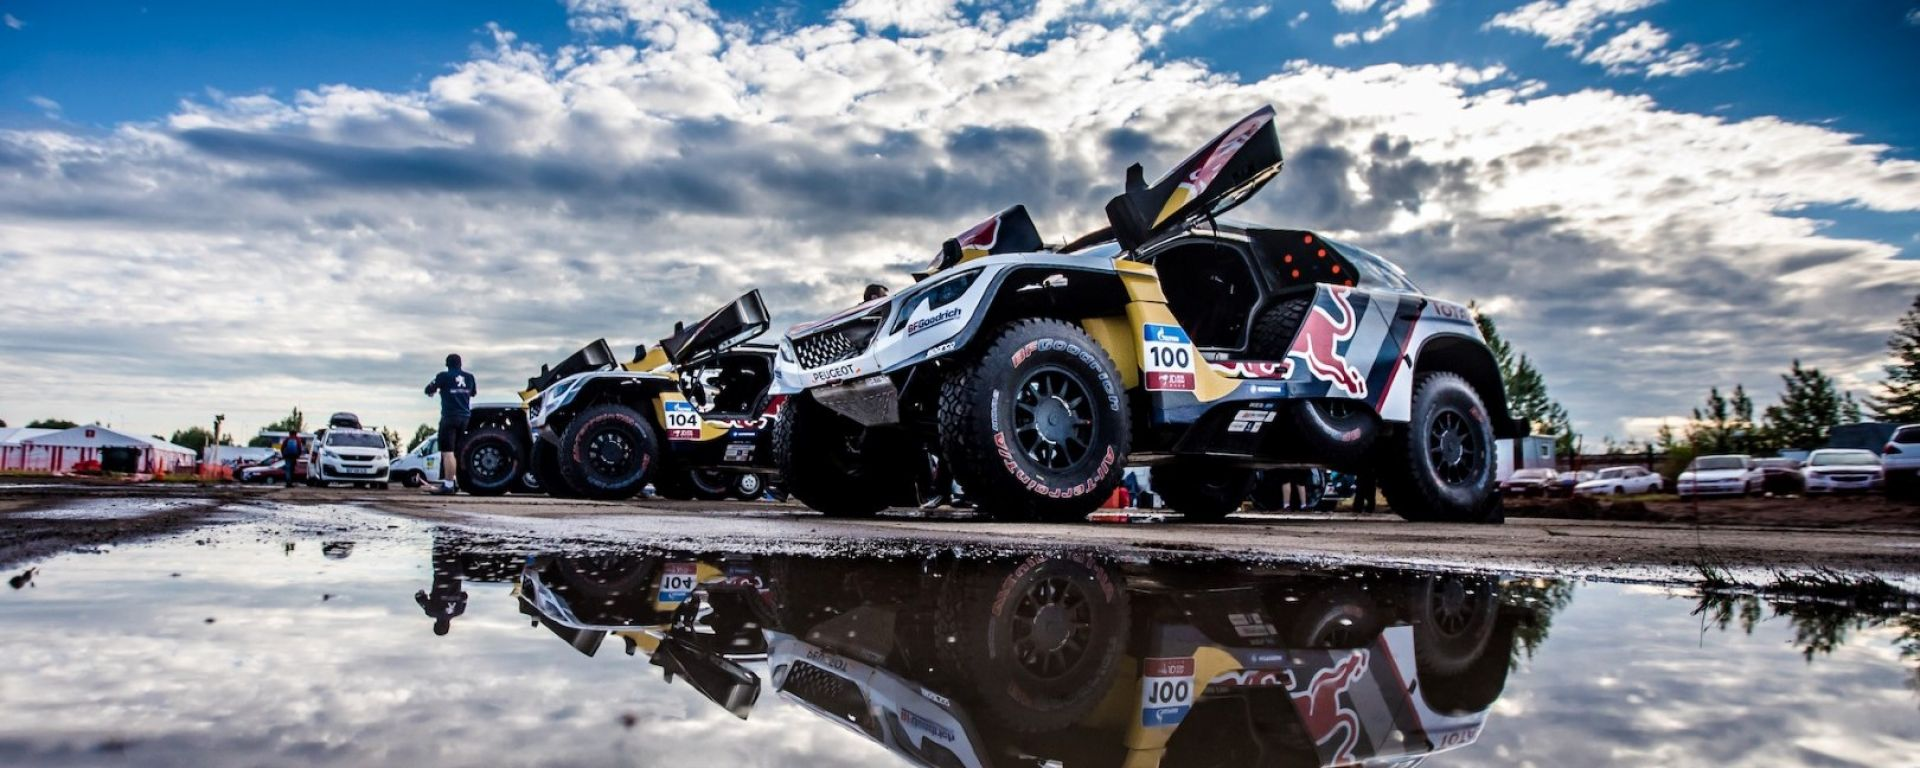 Peugeot 3008 DKR - Silk Way Rally 2017, Giorno 3